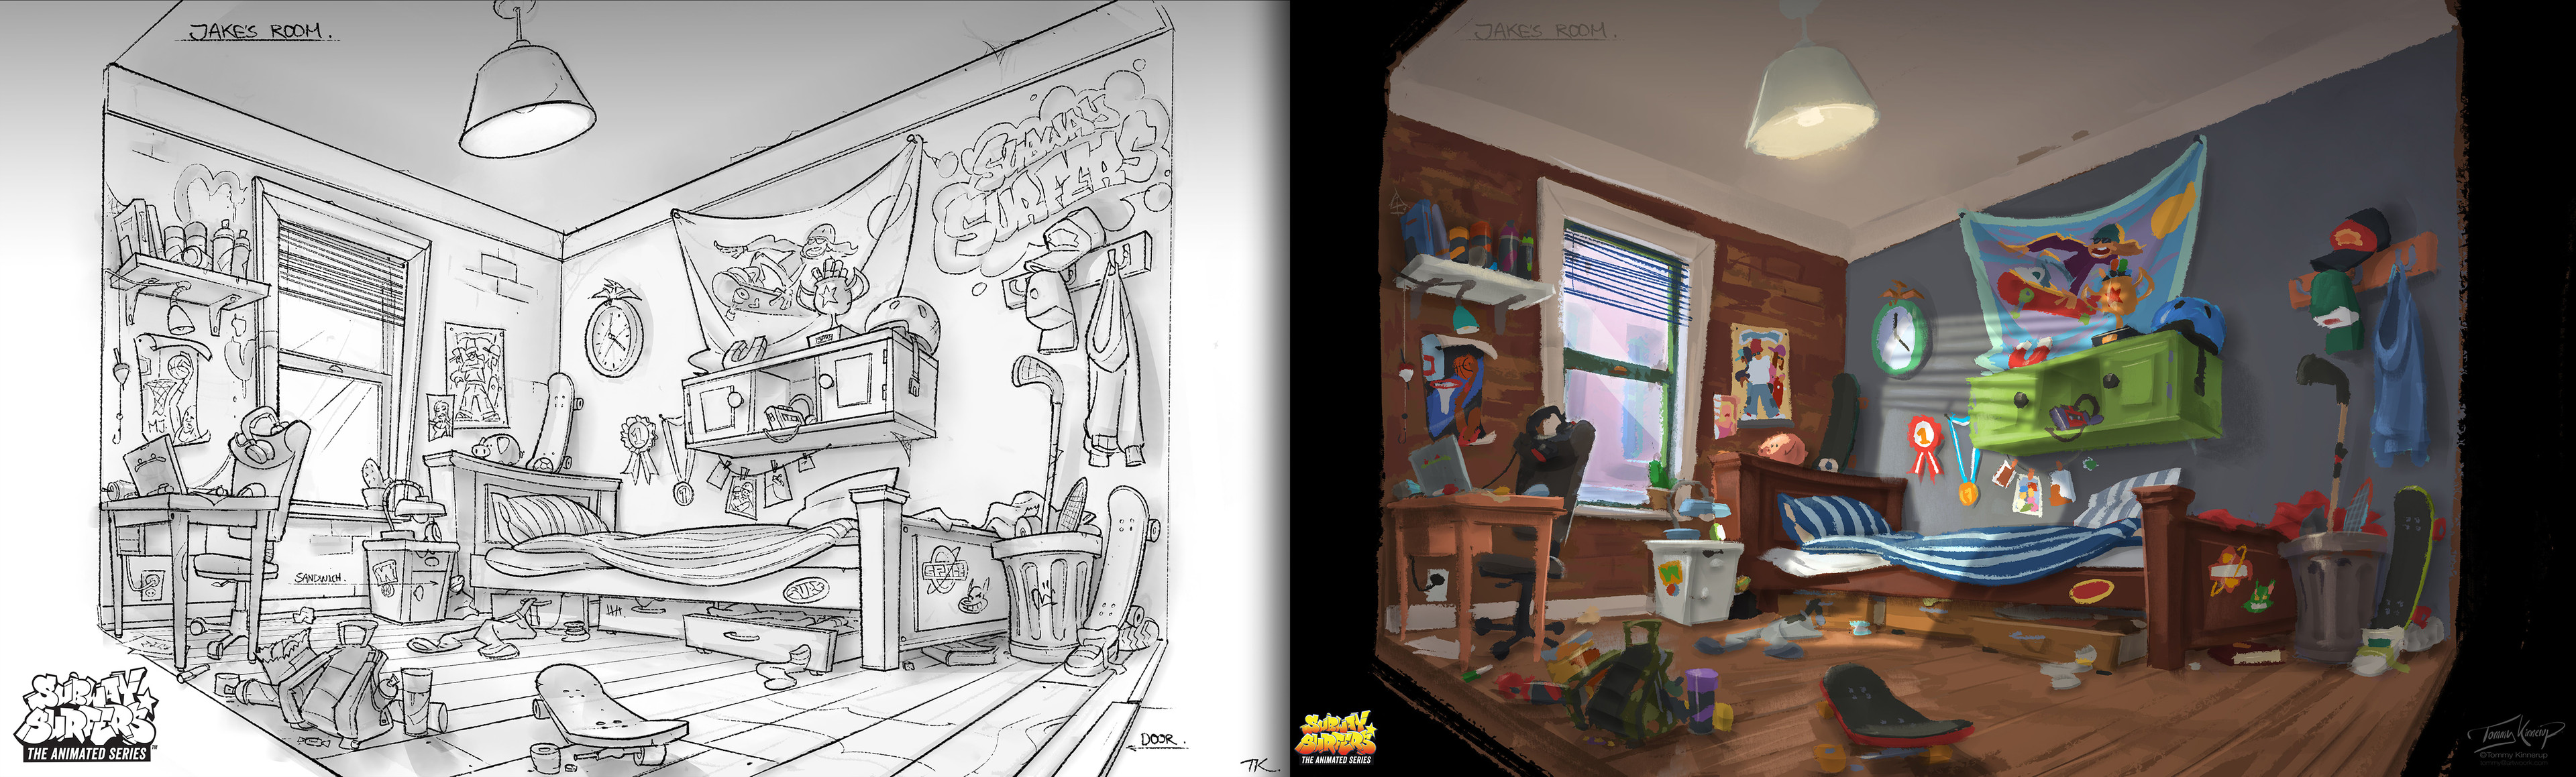 Int. Jake's room - design sketch to color